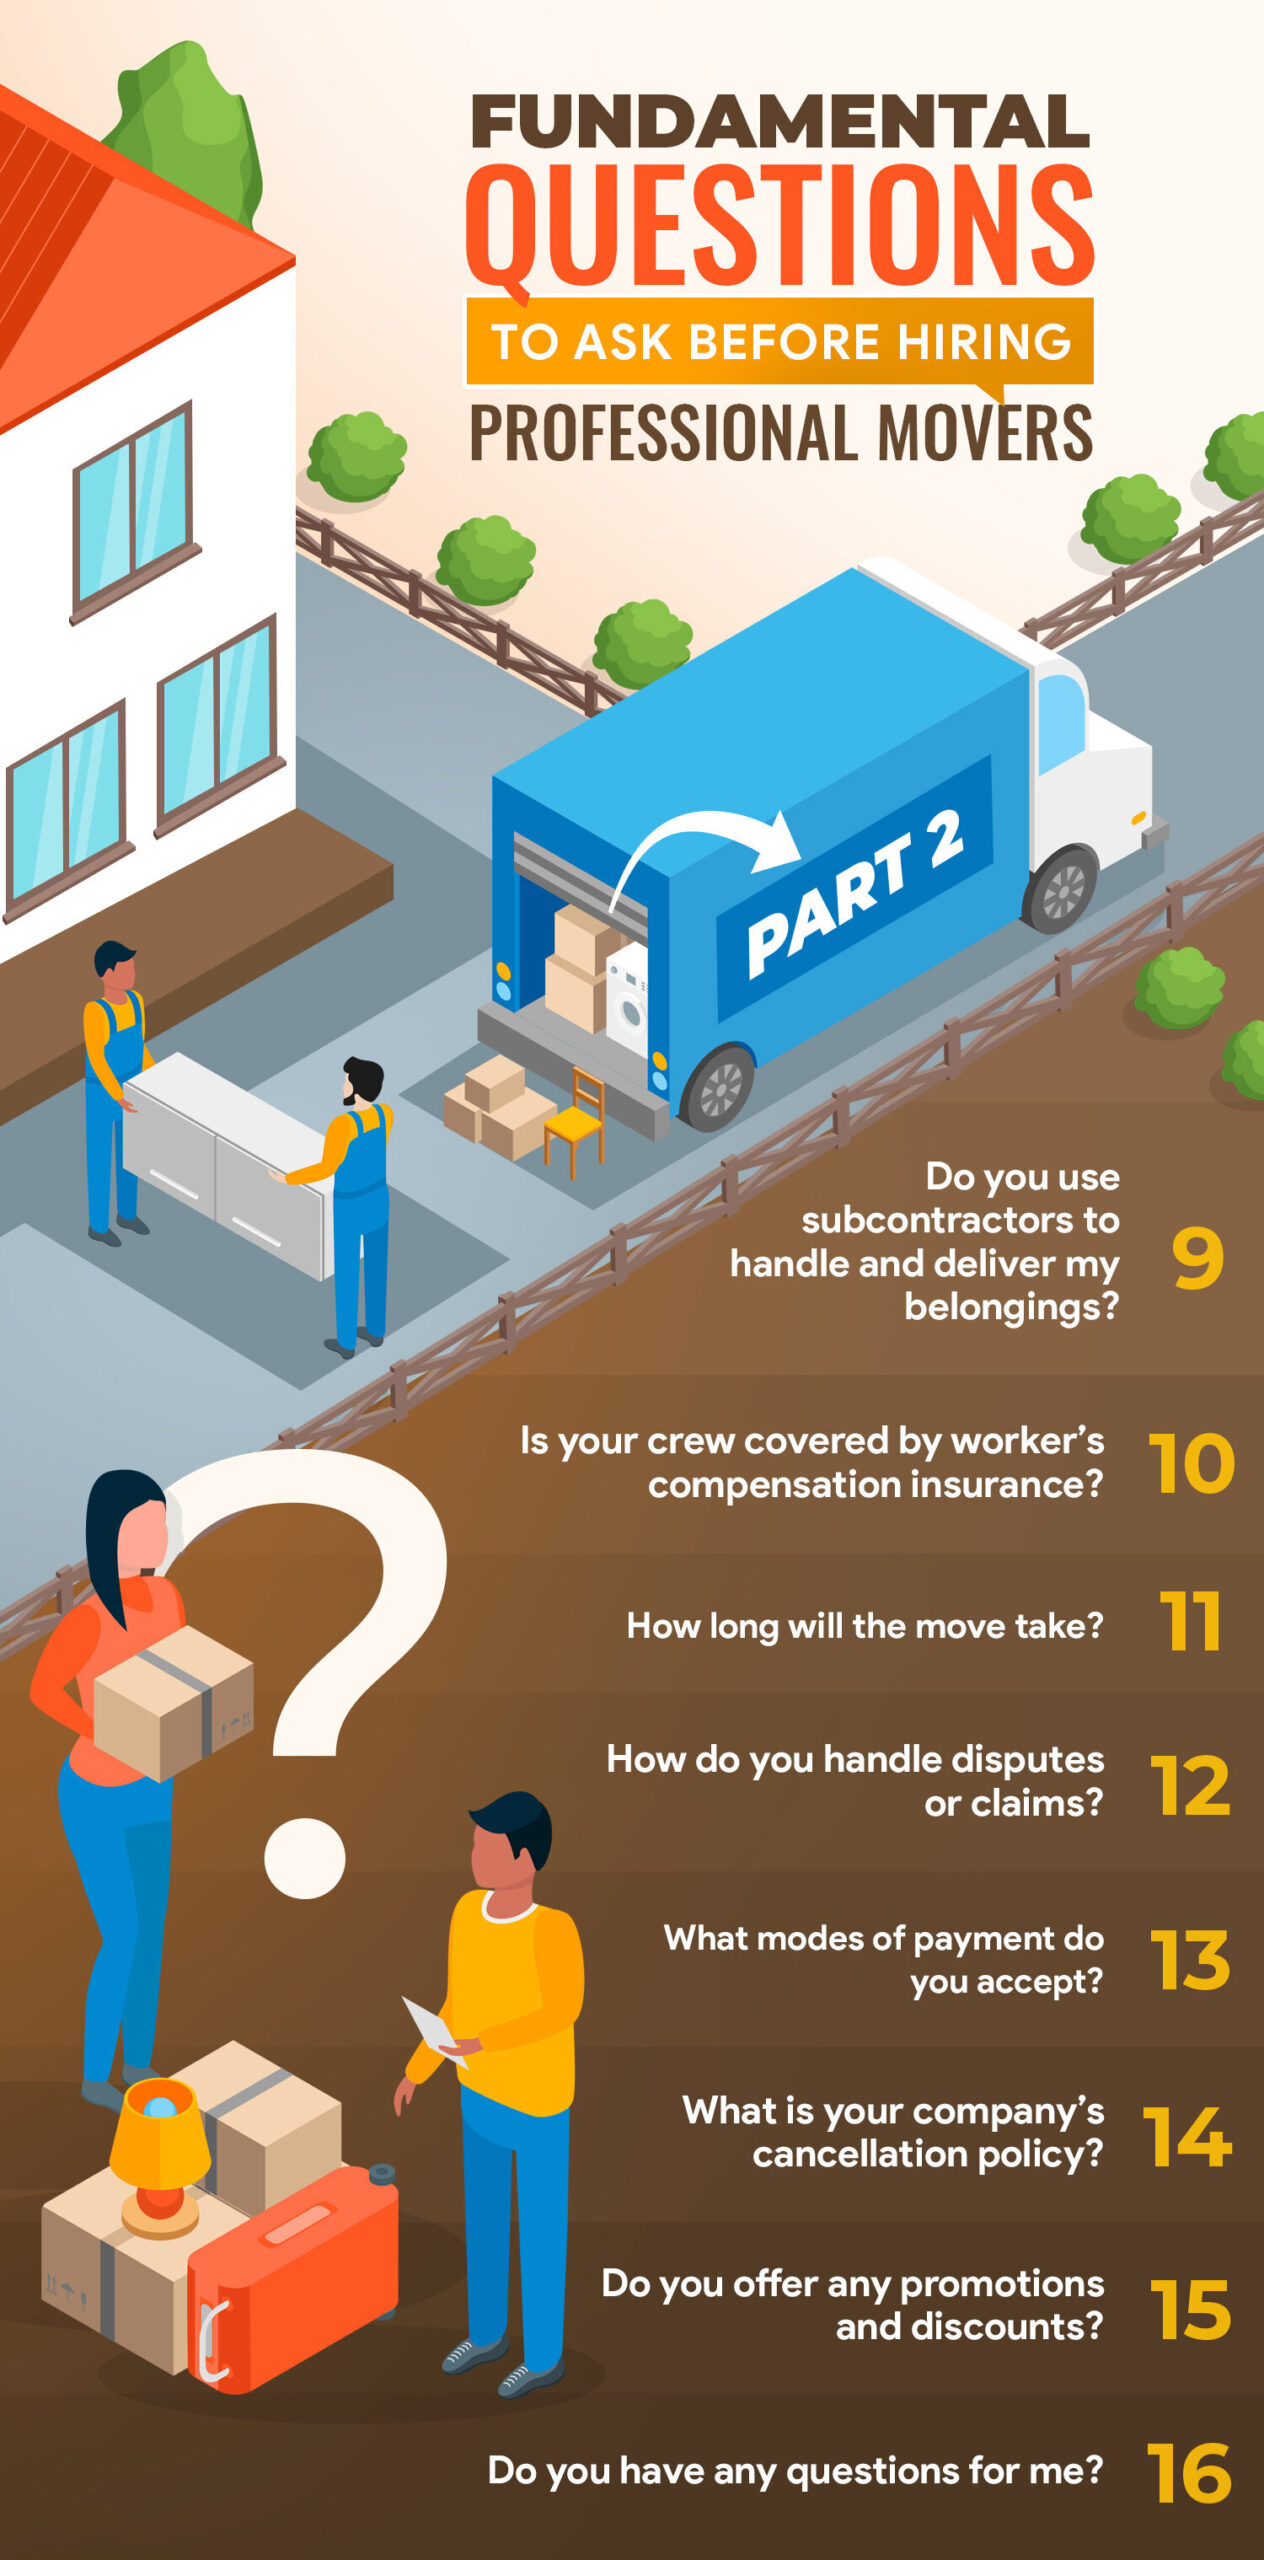 Fundamental Questions To Ask Before Hiring Professional Movers: Part 2